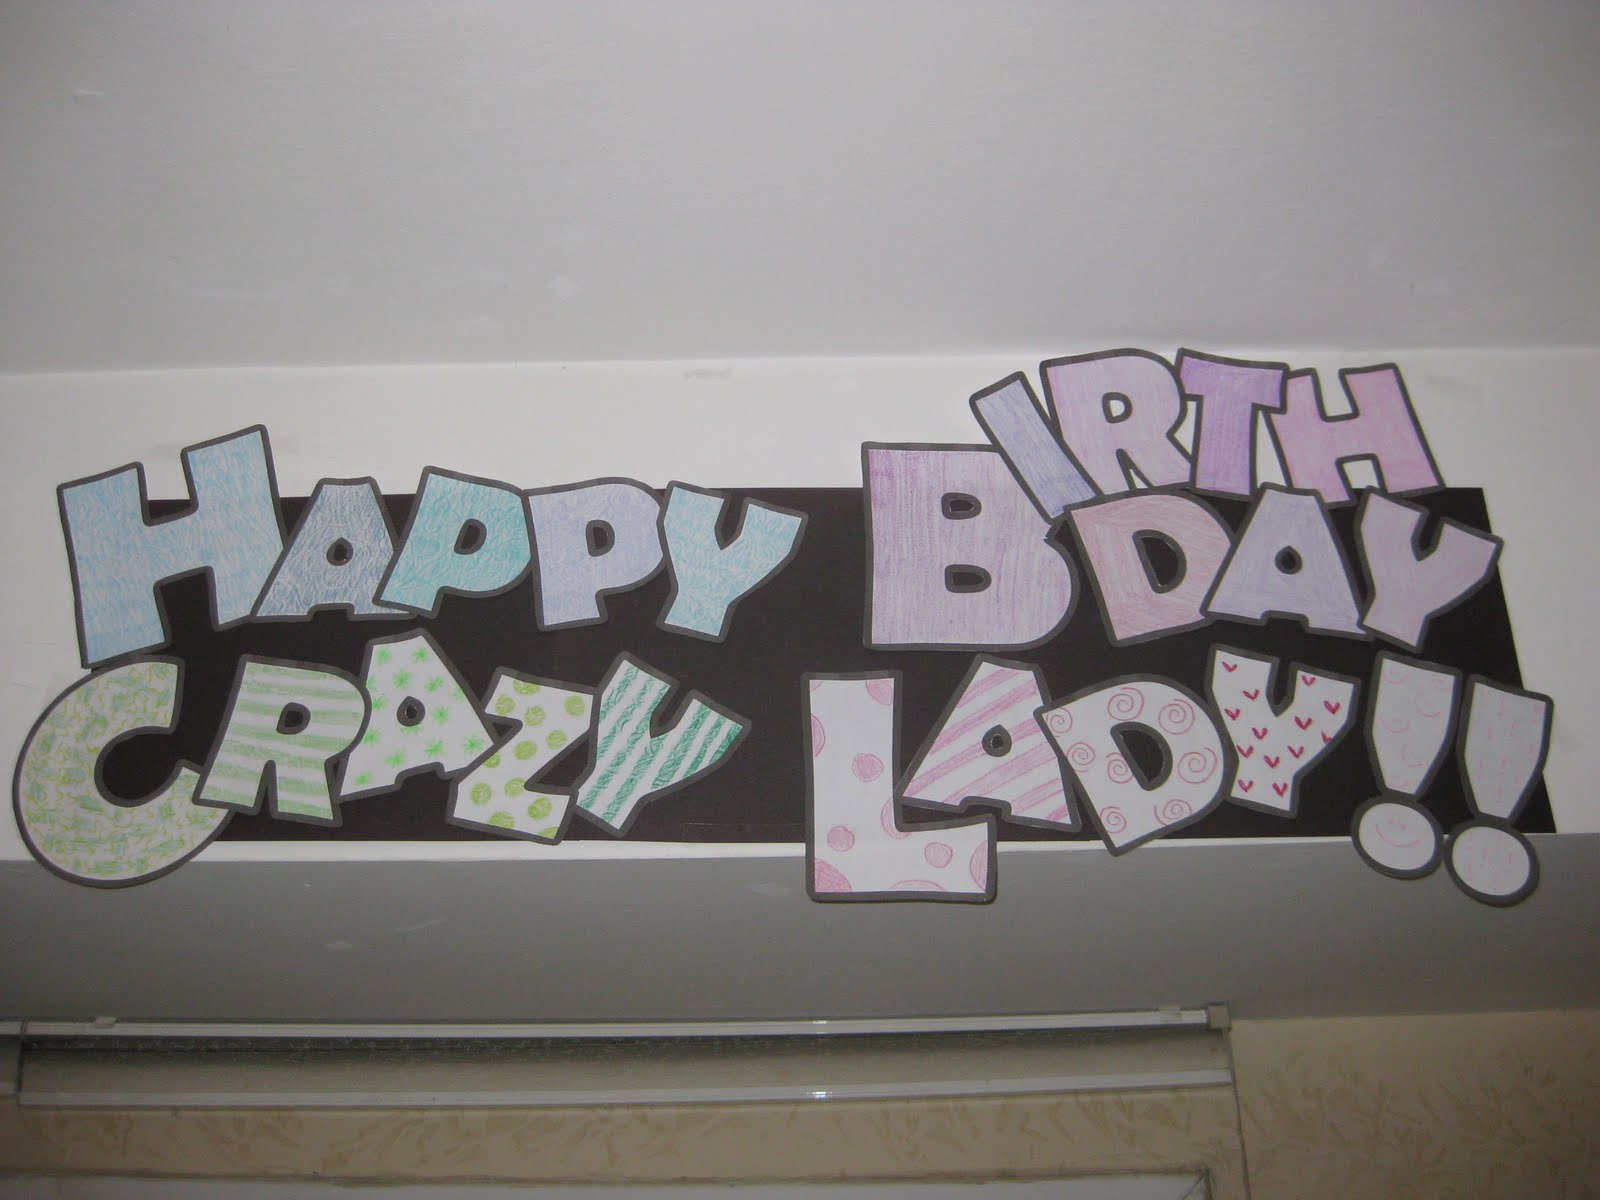 Happy Birthday Lady Images ~ At home in the holy land happy crazy birthday lady